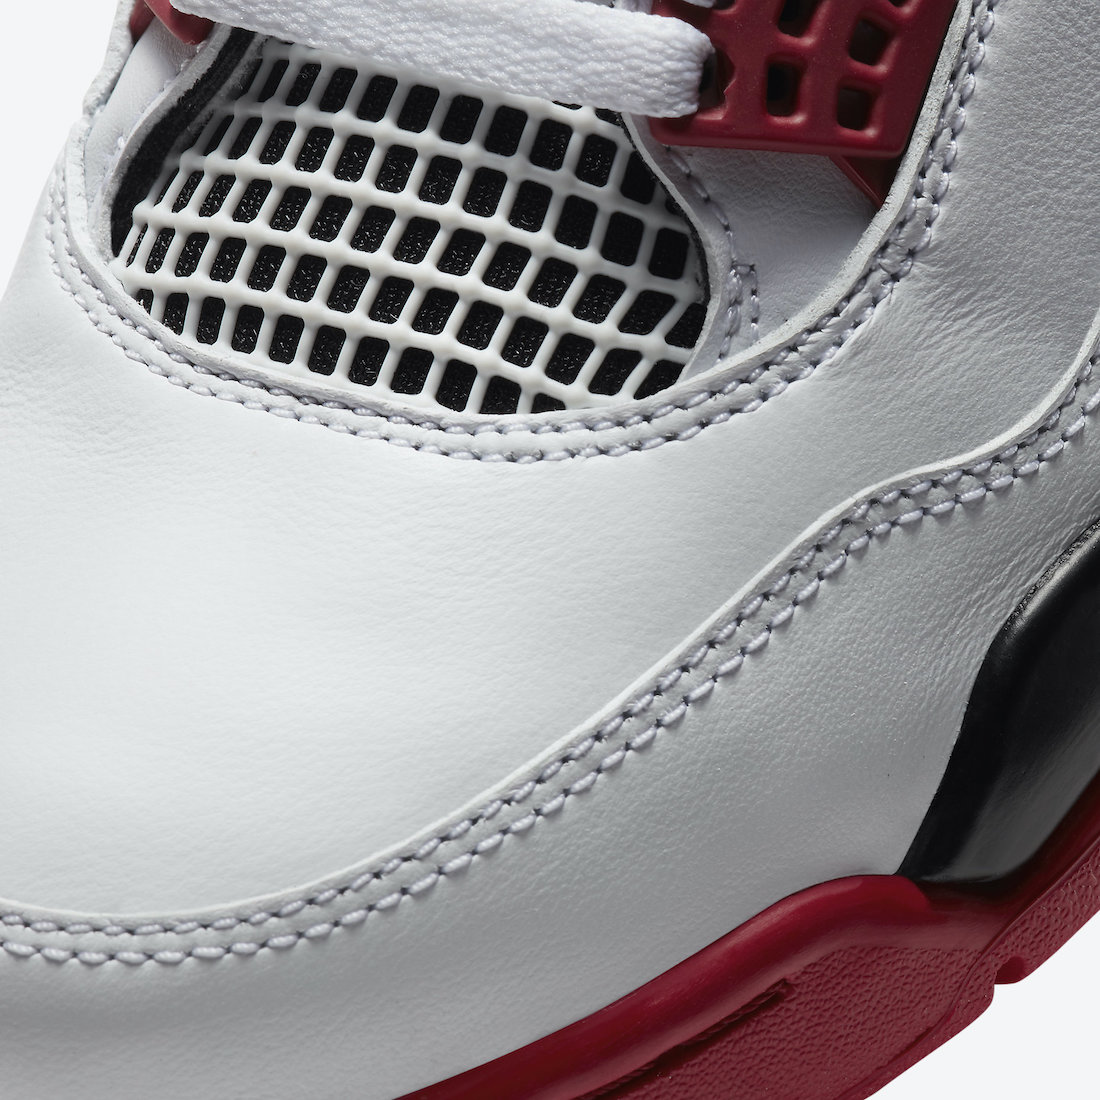 Air-Jordan-4-OG-Fire-Red-DC7770-160-Release-Date-Price-6